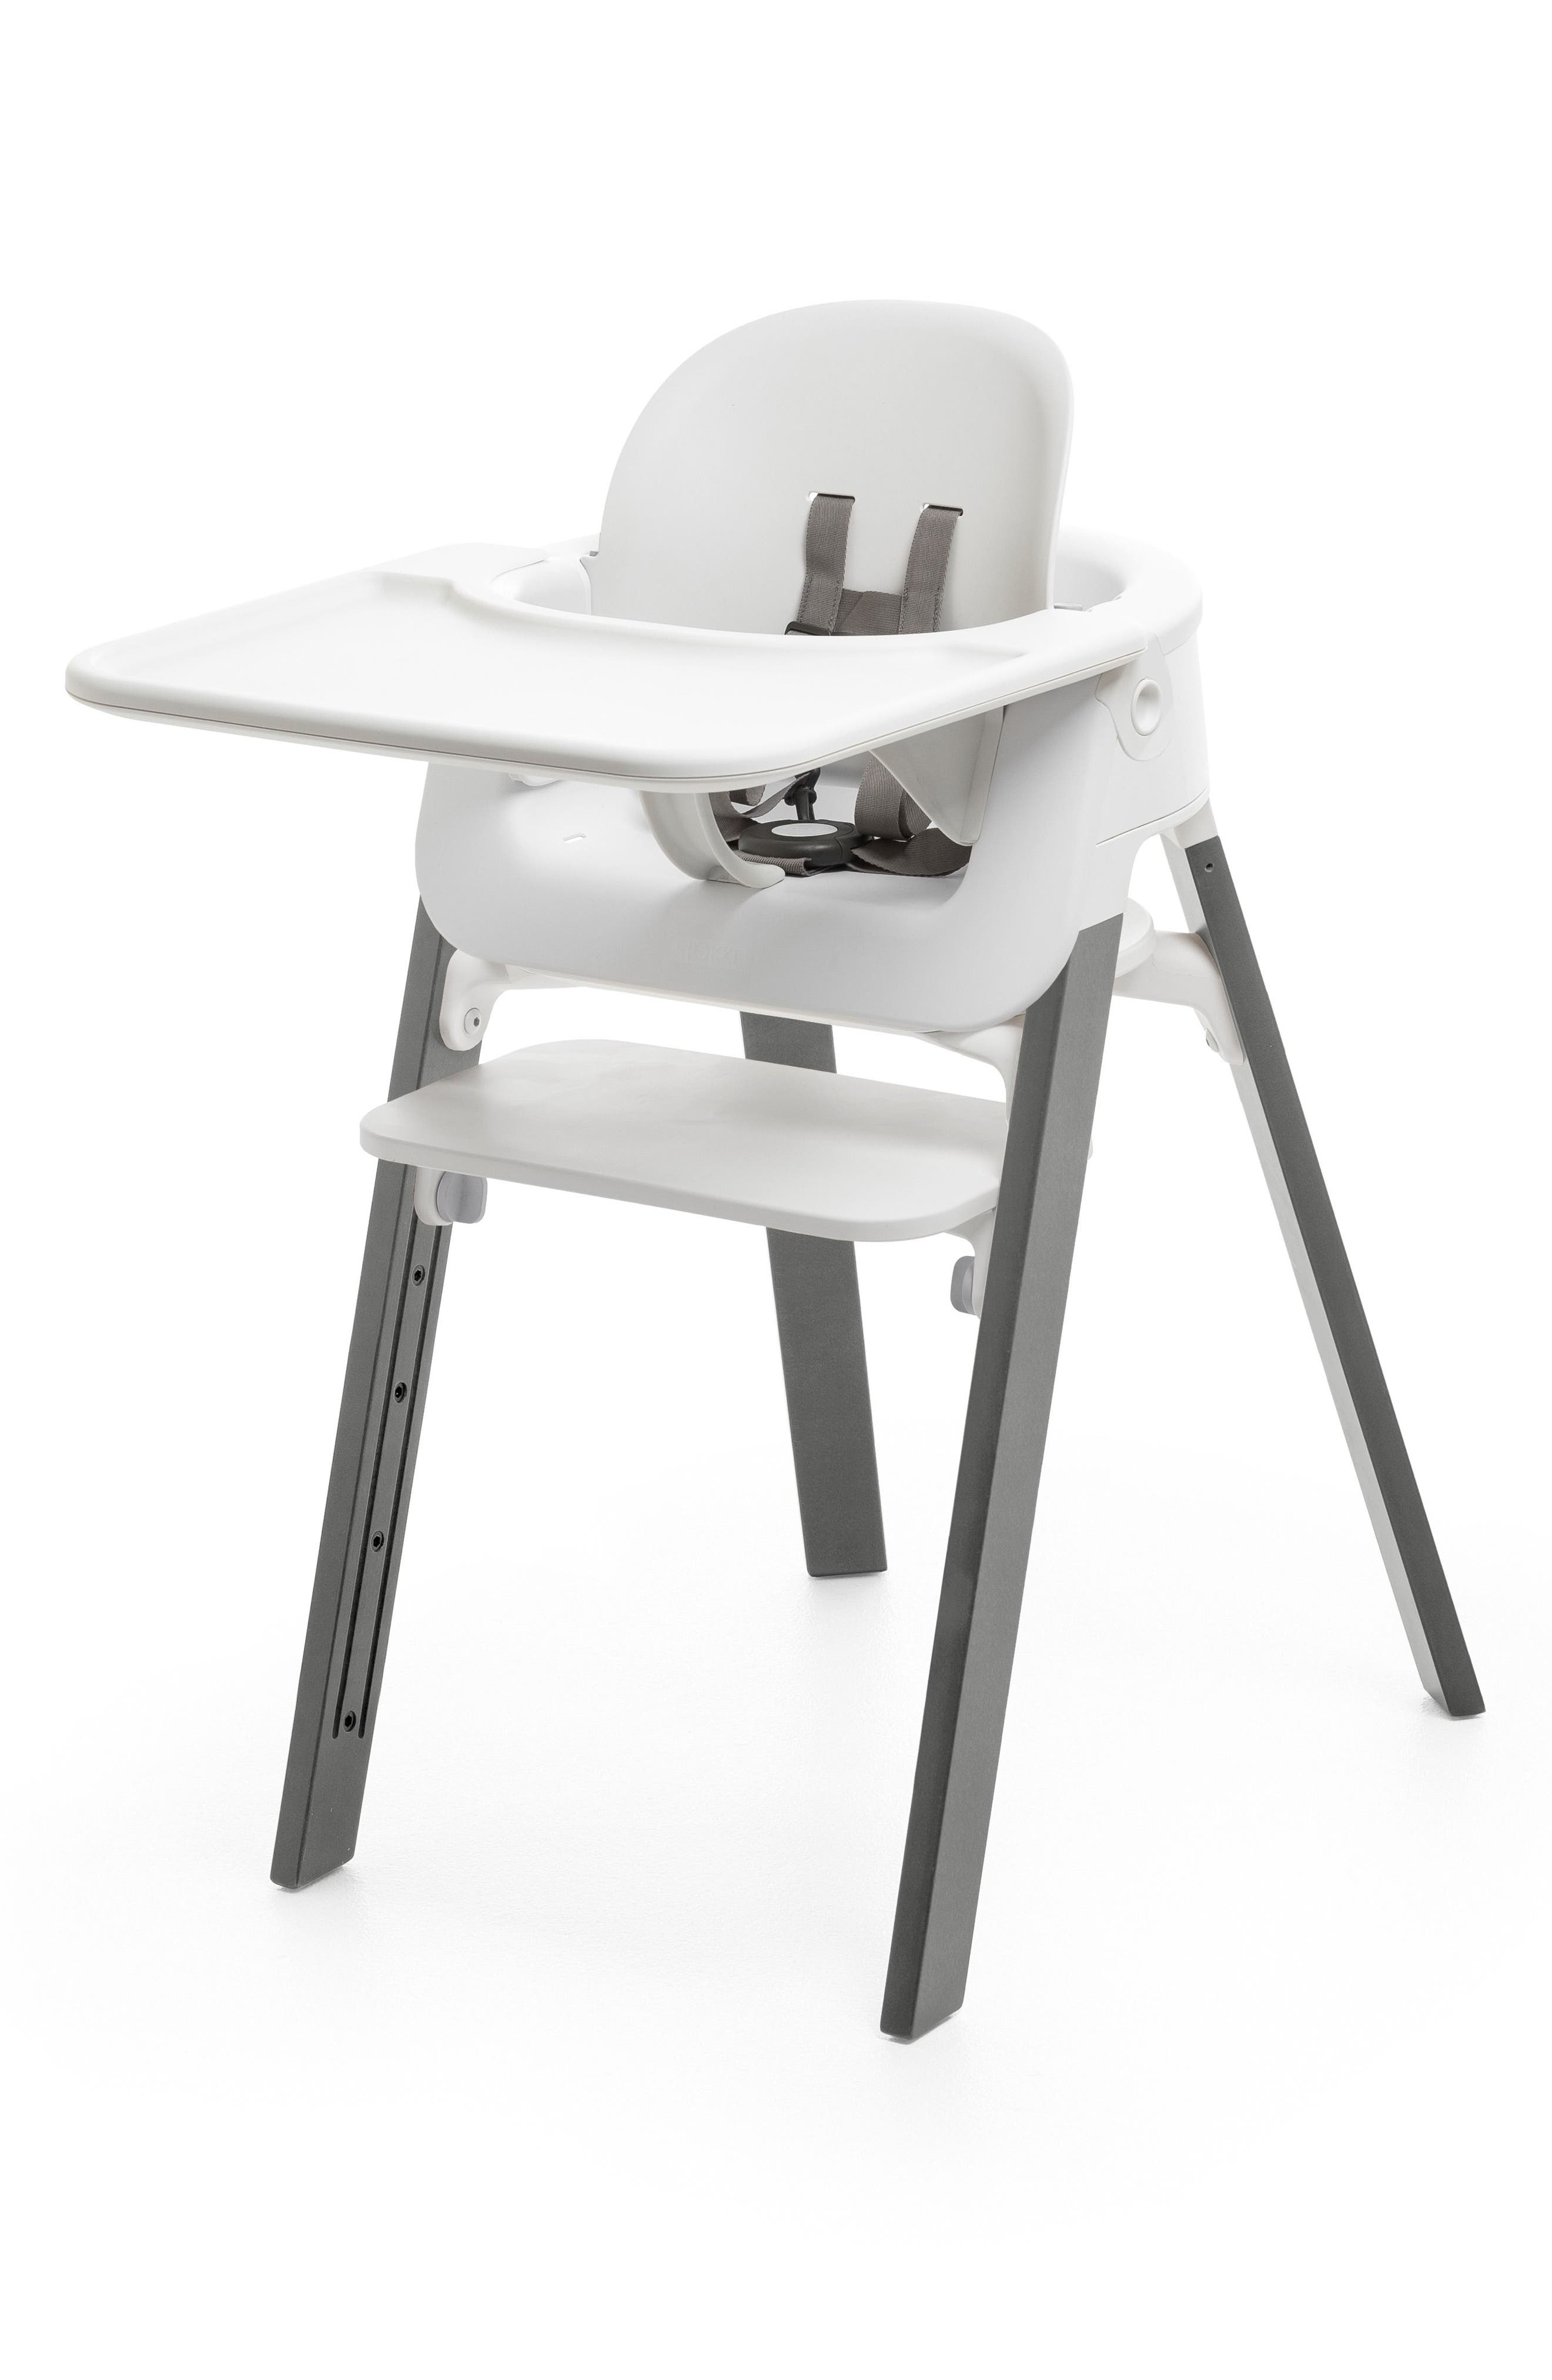 STOKKE,                             Steps<sup>™</sup> Chair,                             Alternate thumbnail 2, color,                             STORM GREY WITH WHITE SEAT